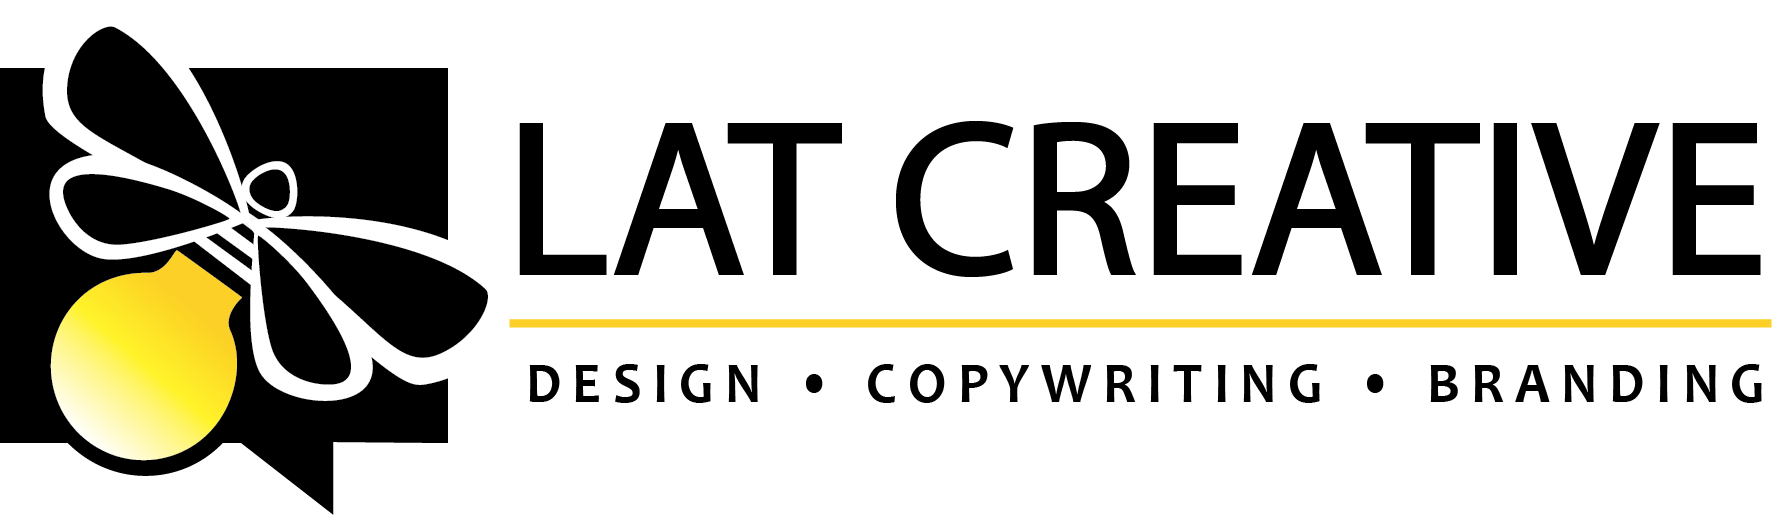 FINAL_LAT_Creative_Logo_WS